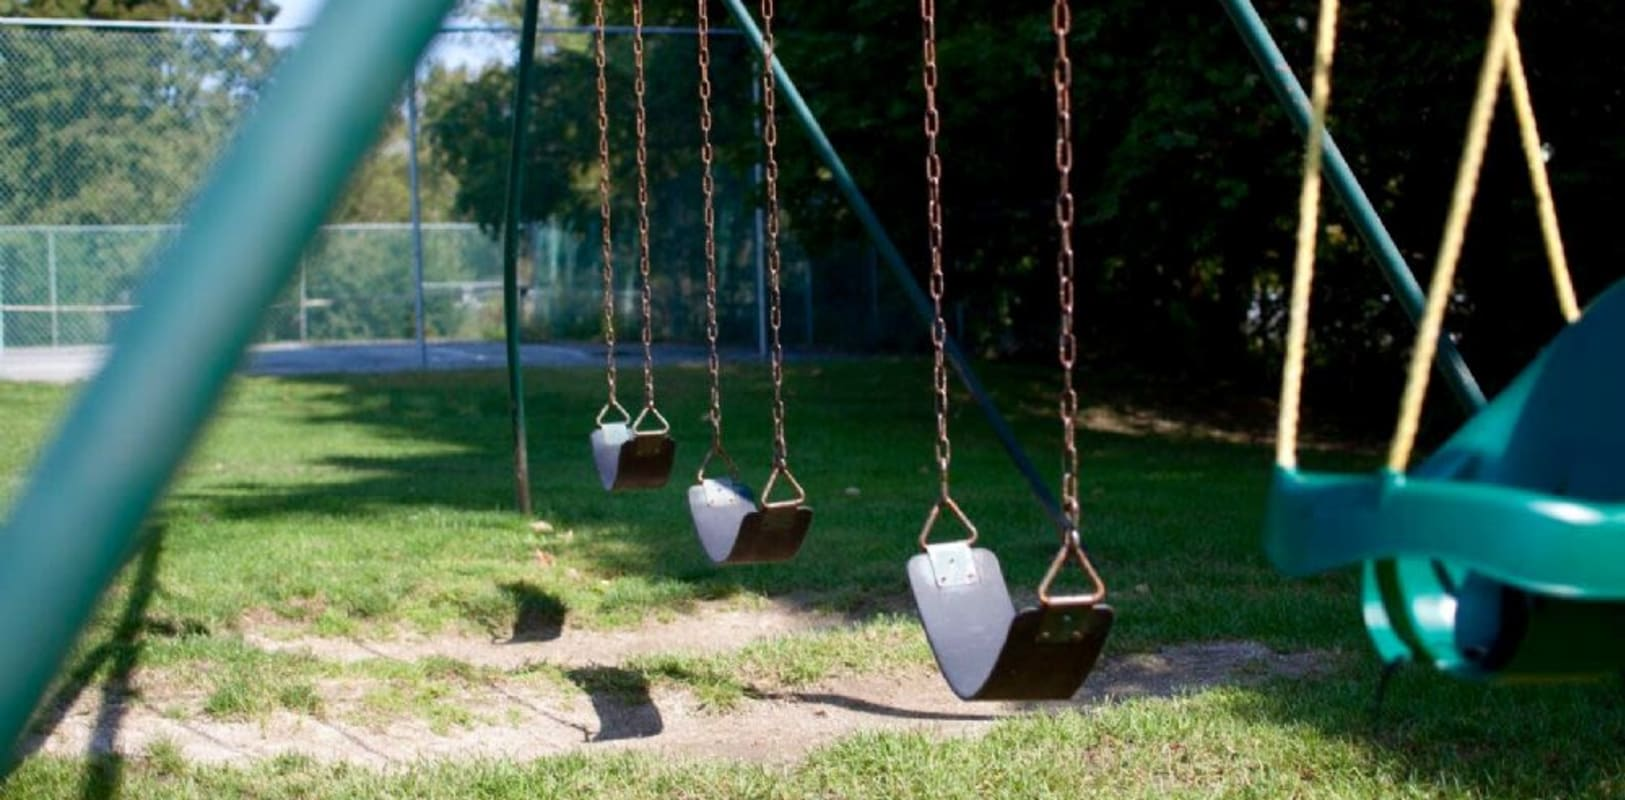 Community park with swings in Oley, Pennsylvania near Oley Meadows